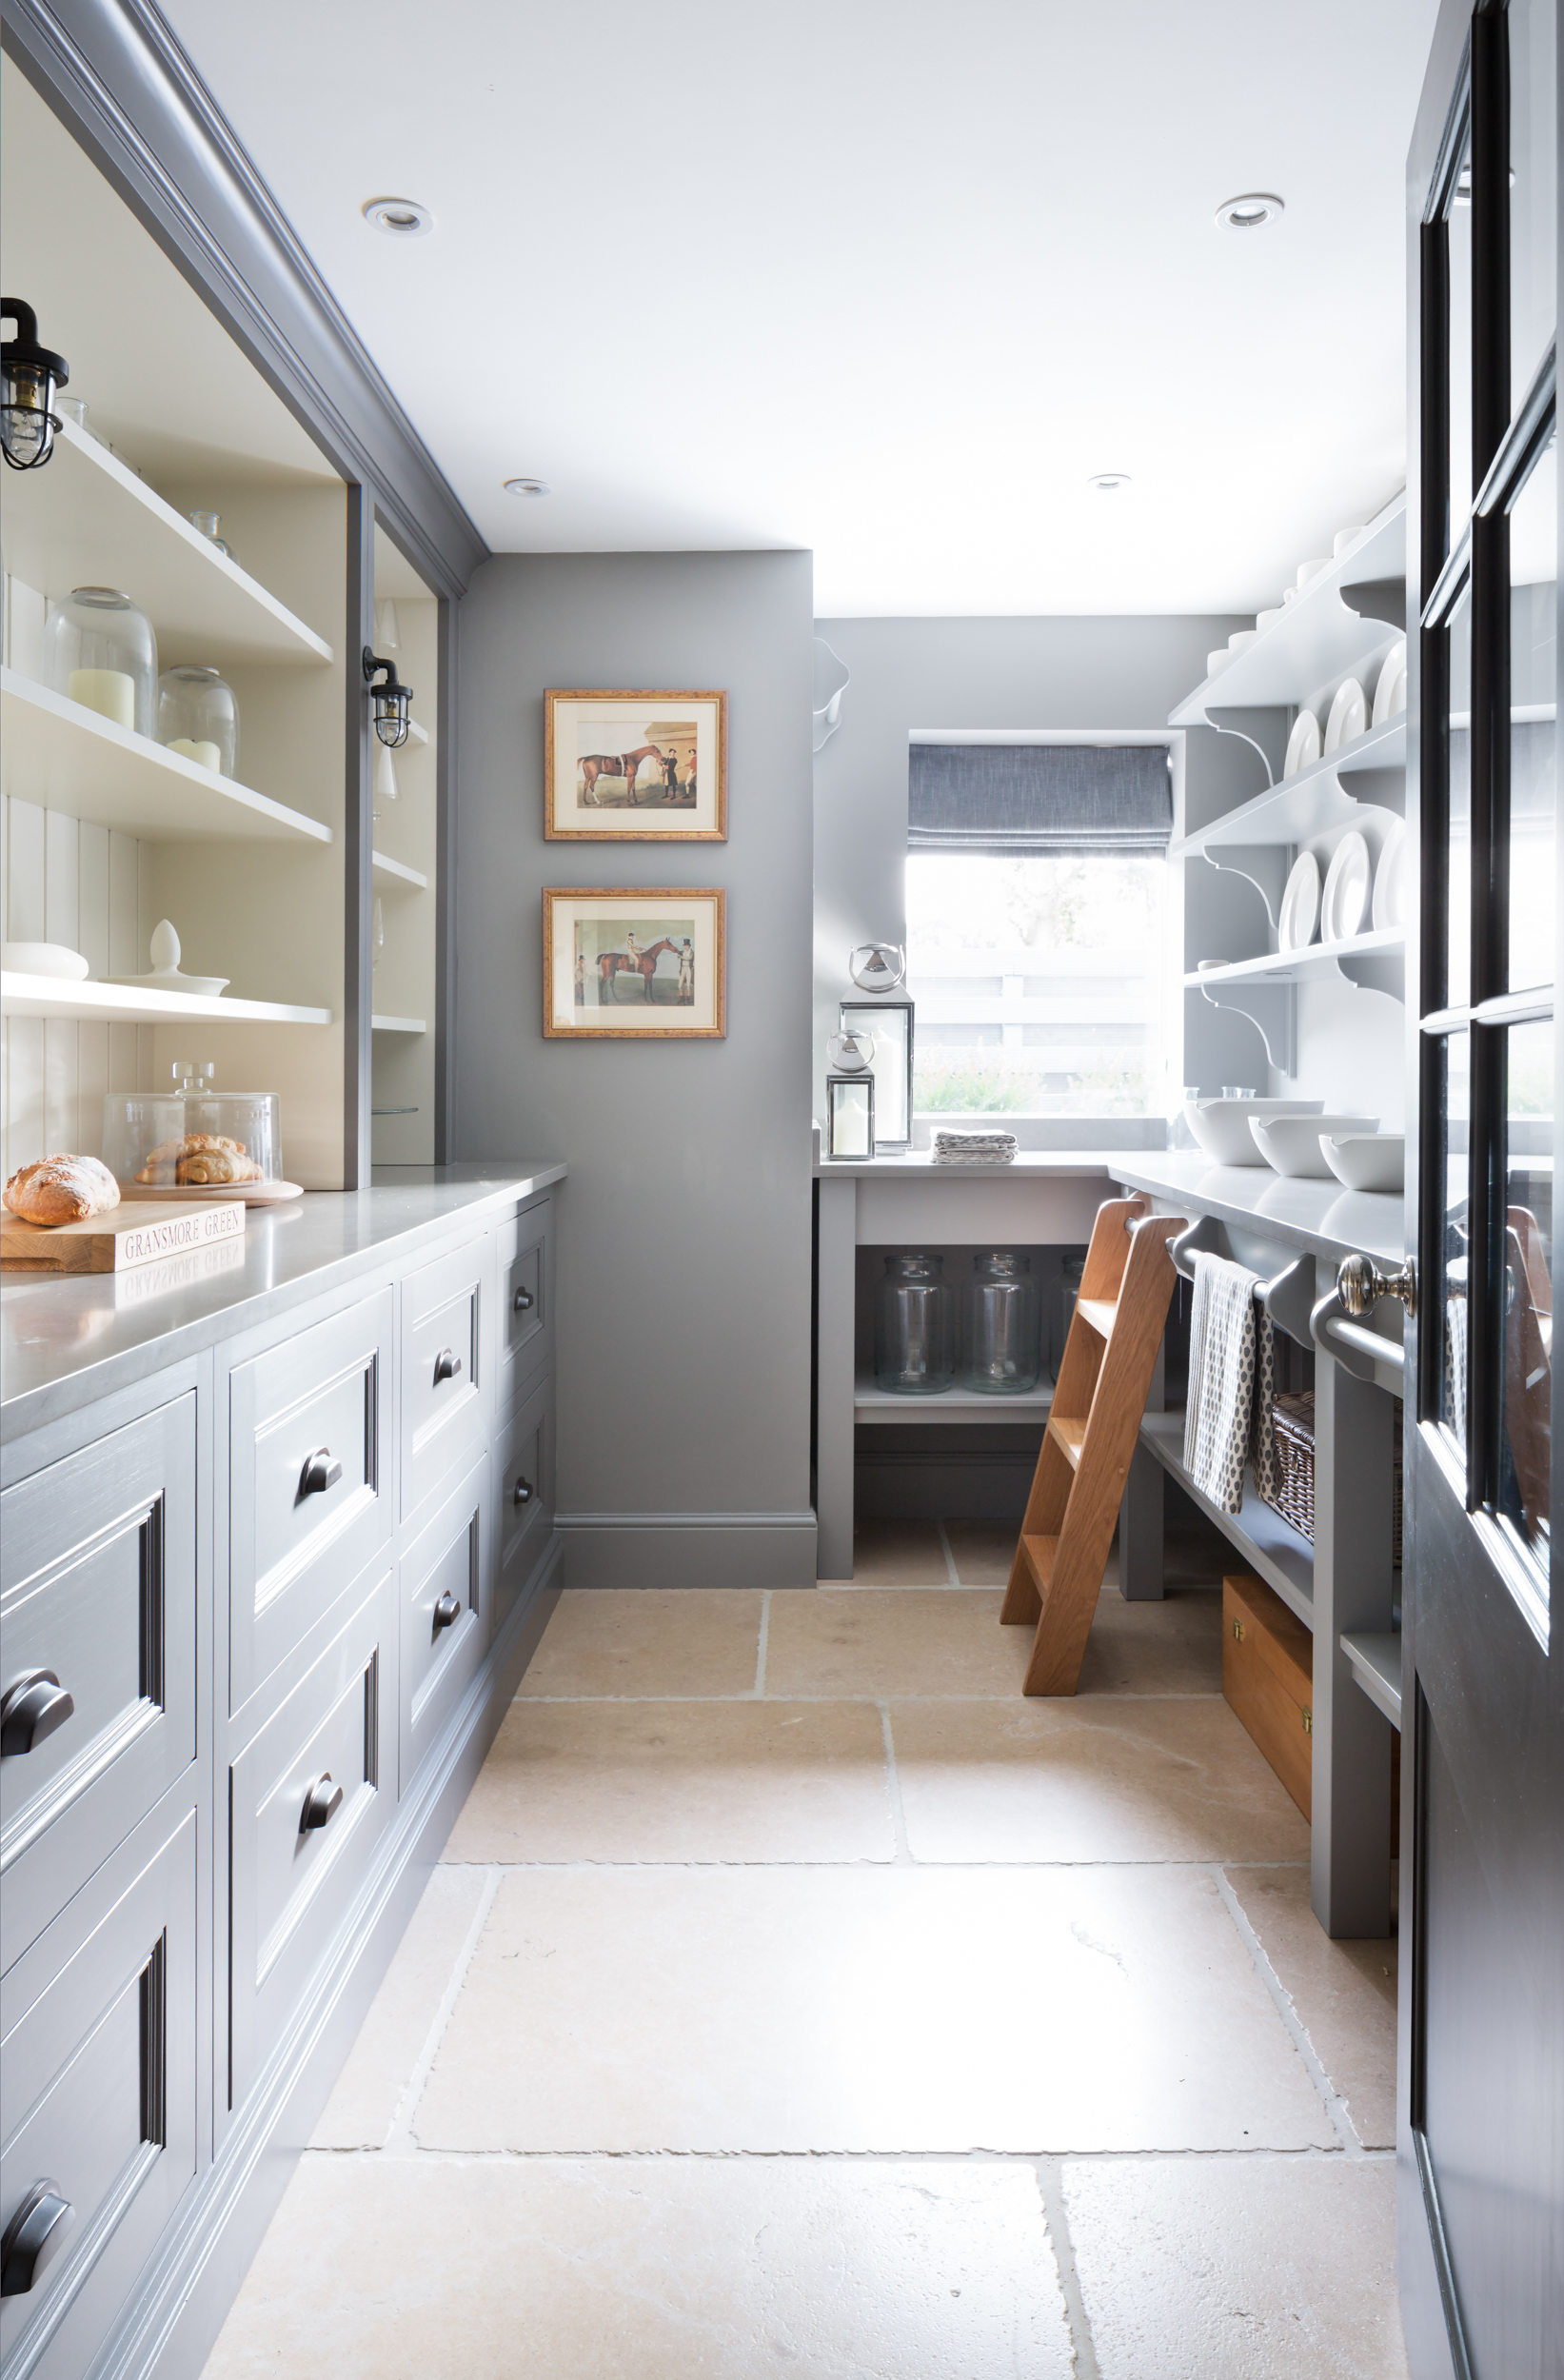 Paul Craig, Interior Photographer, Kitchen Photography, London, Residential, Pantry with door open